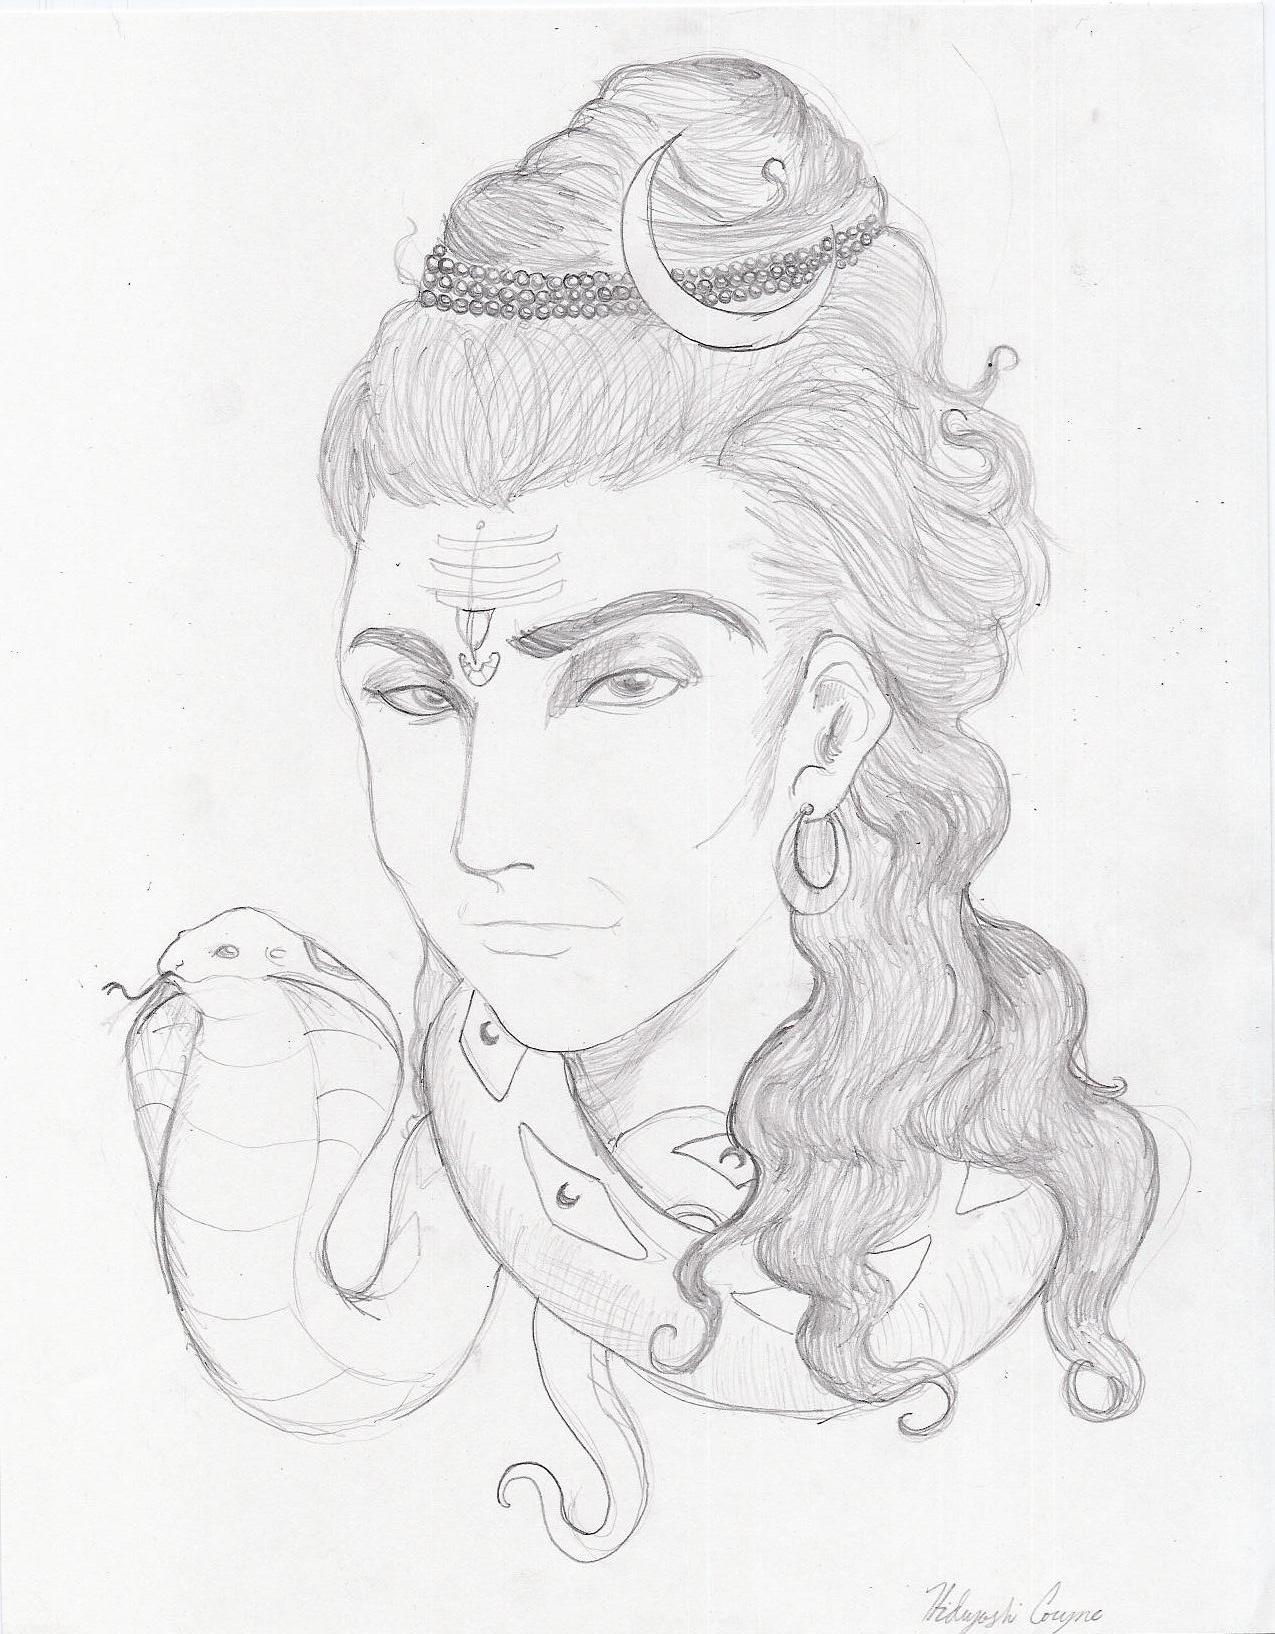 1275x1634 Lord Shiva Portrait In Pencil Shading Easy Pencil Drawings Of God